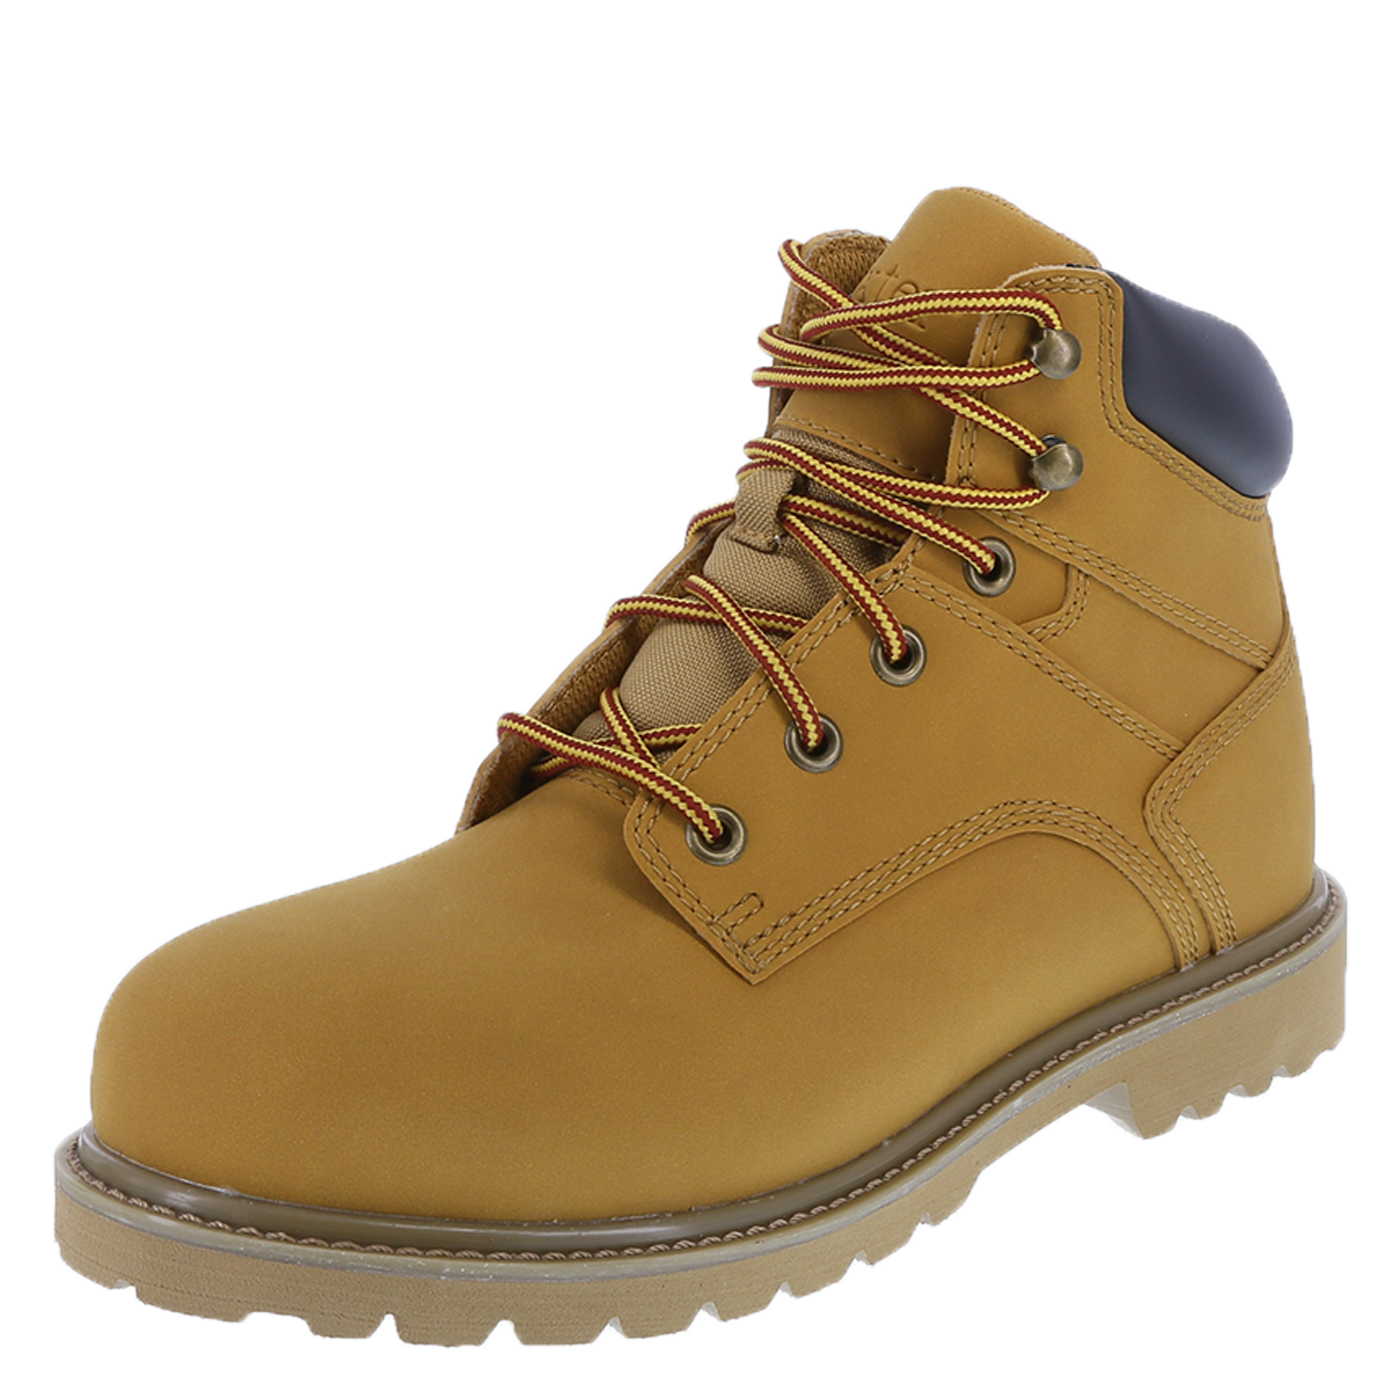 Mens Insulated Boots BIQTssCu